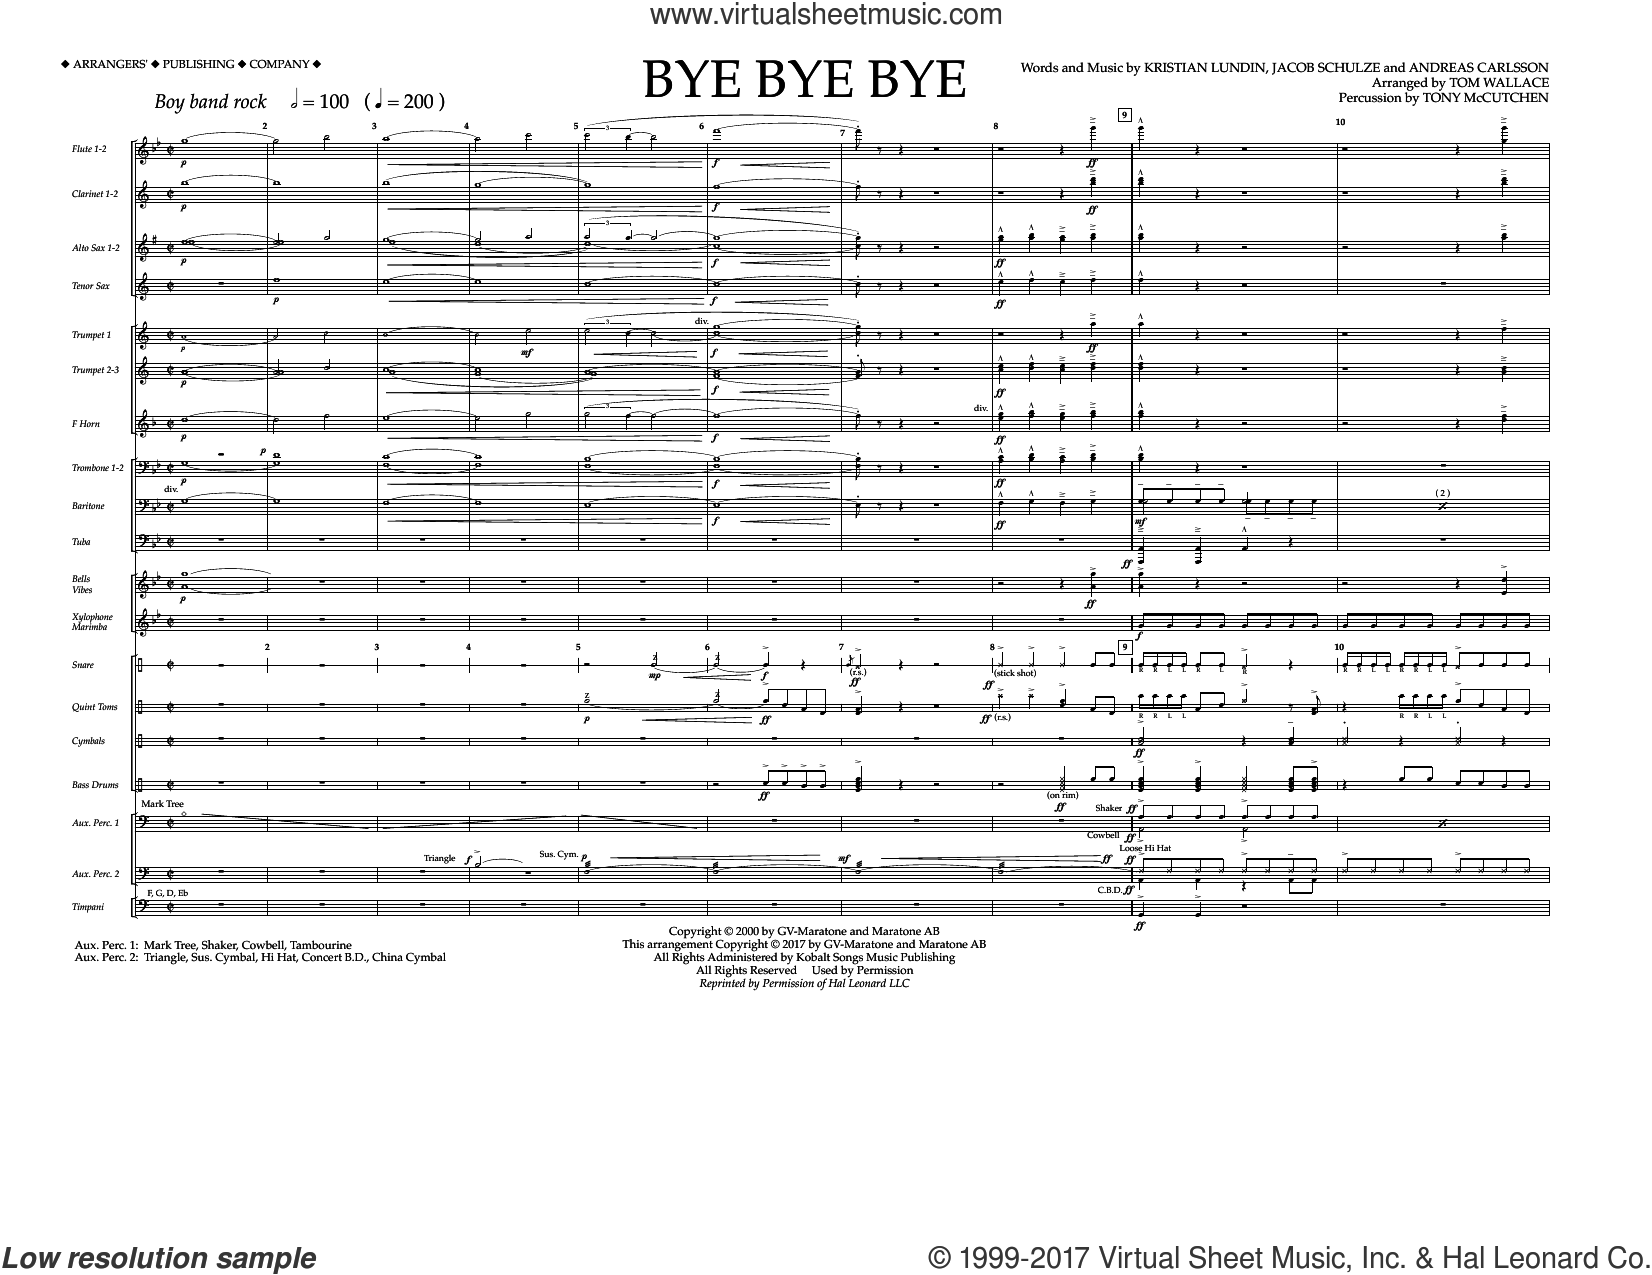 Bye Bye Bye (COMPLETE) sheet music for marching band by Tom Wallace, Andreas Carlsson, Jake Carlsson, Kristian Lundin and N Sync, intermediate skill level